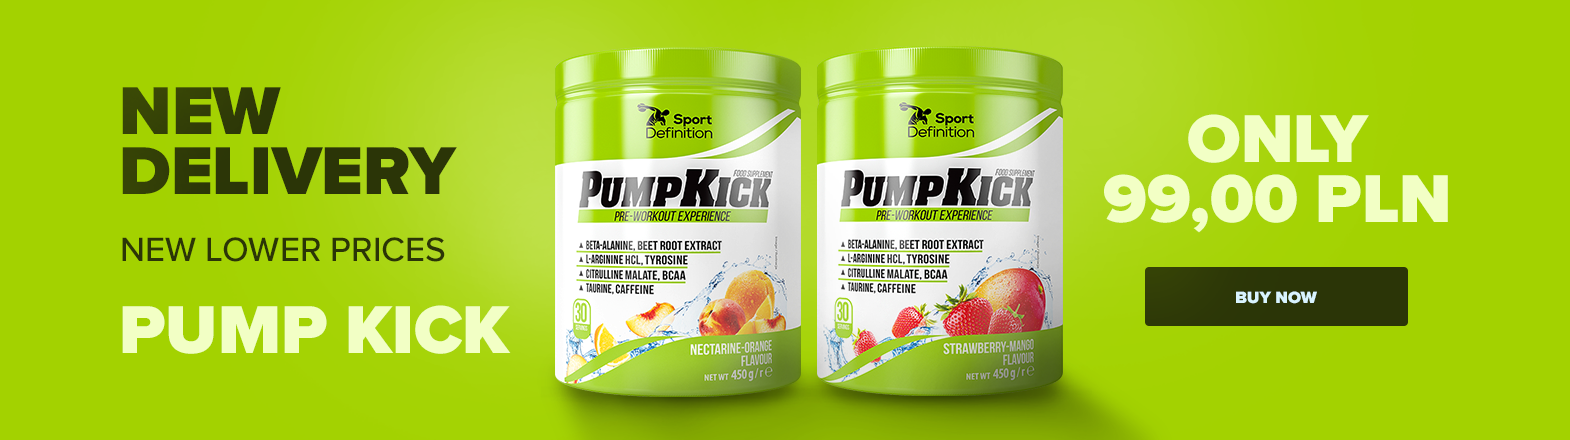 Sport Definition Pump Kick 450g only 99 PLN!